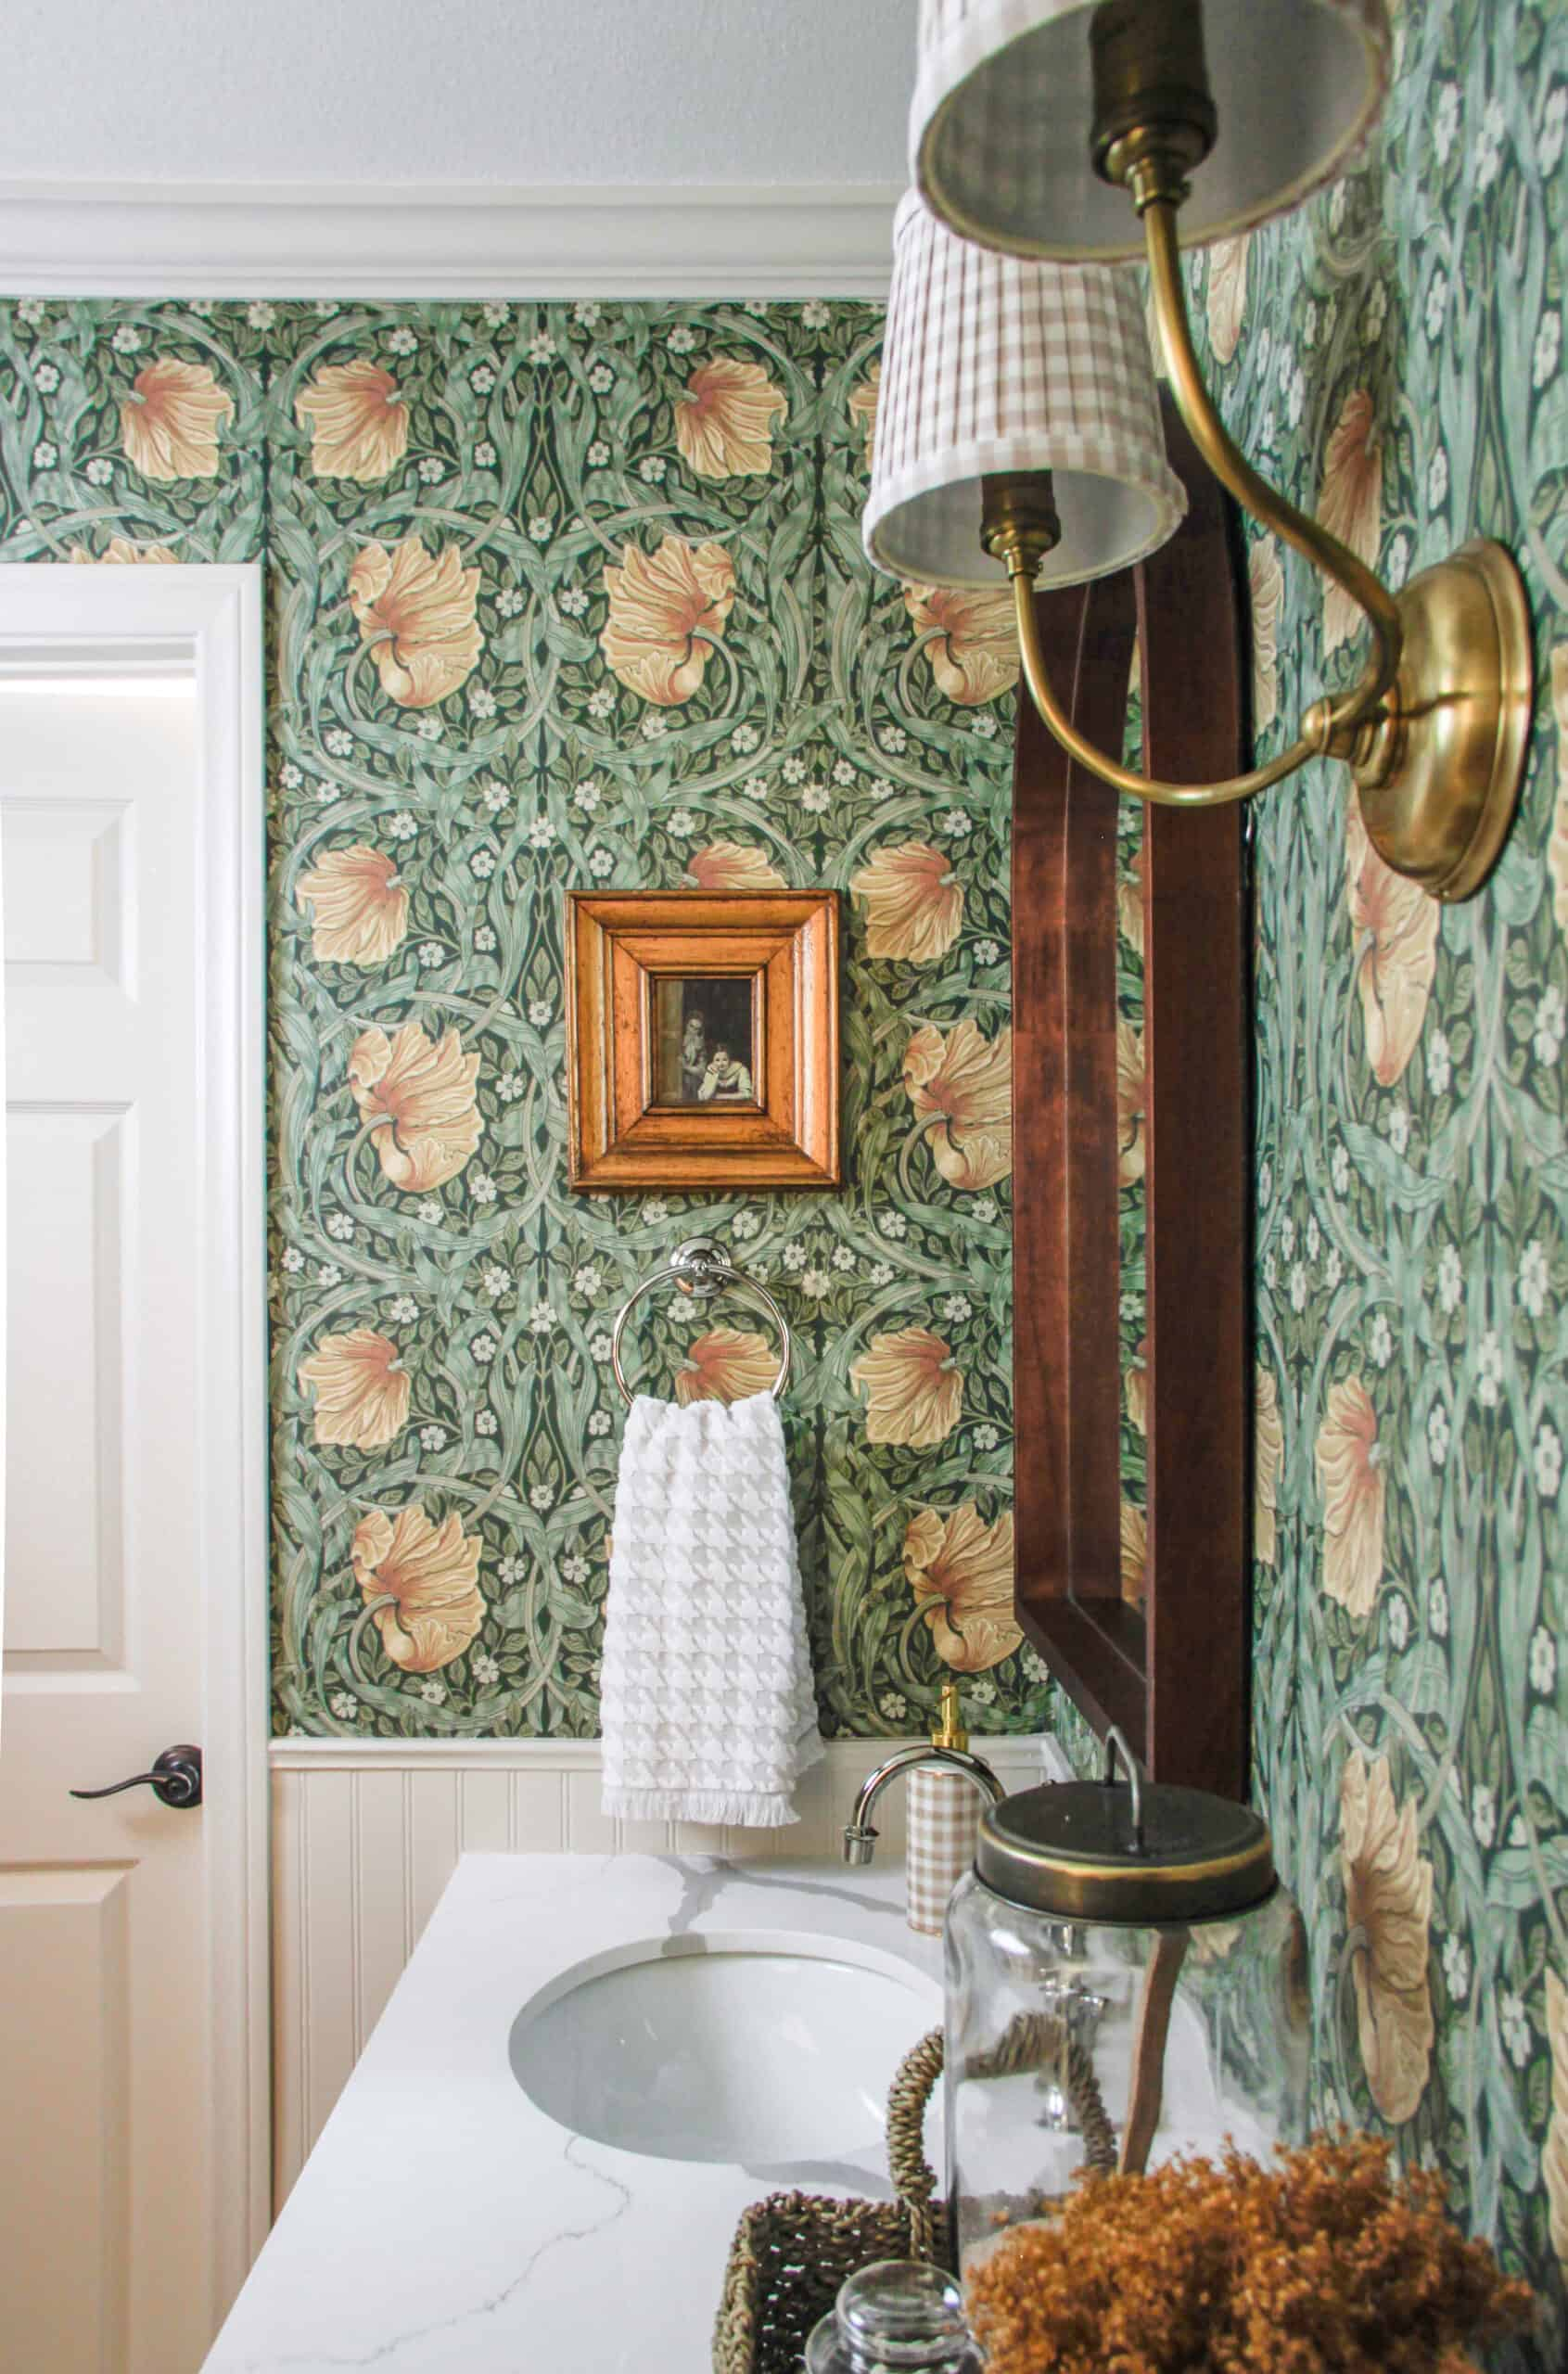 side view of storybook style bathroom with vintage gold frame